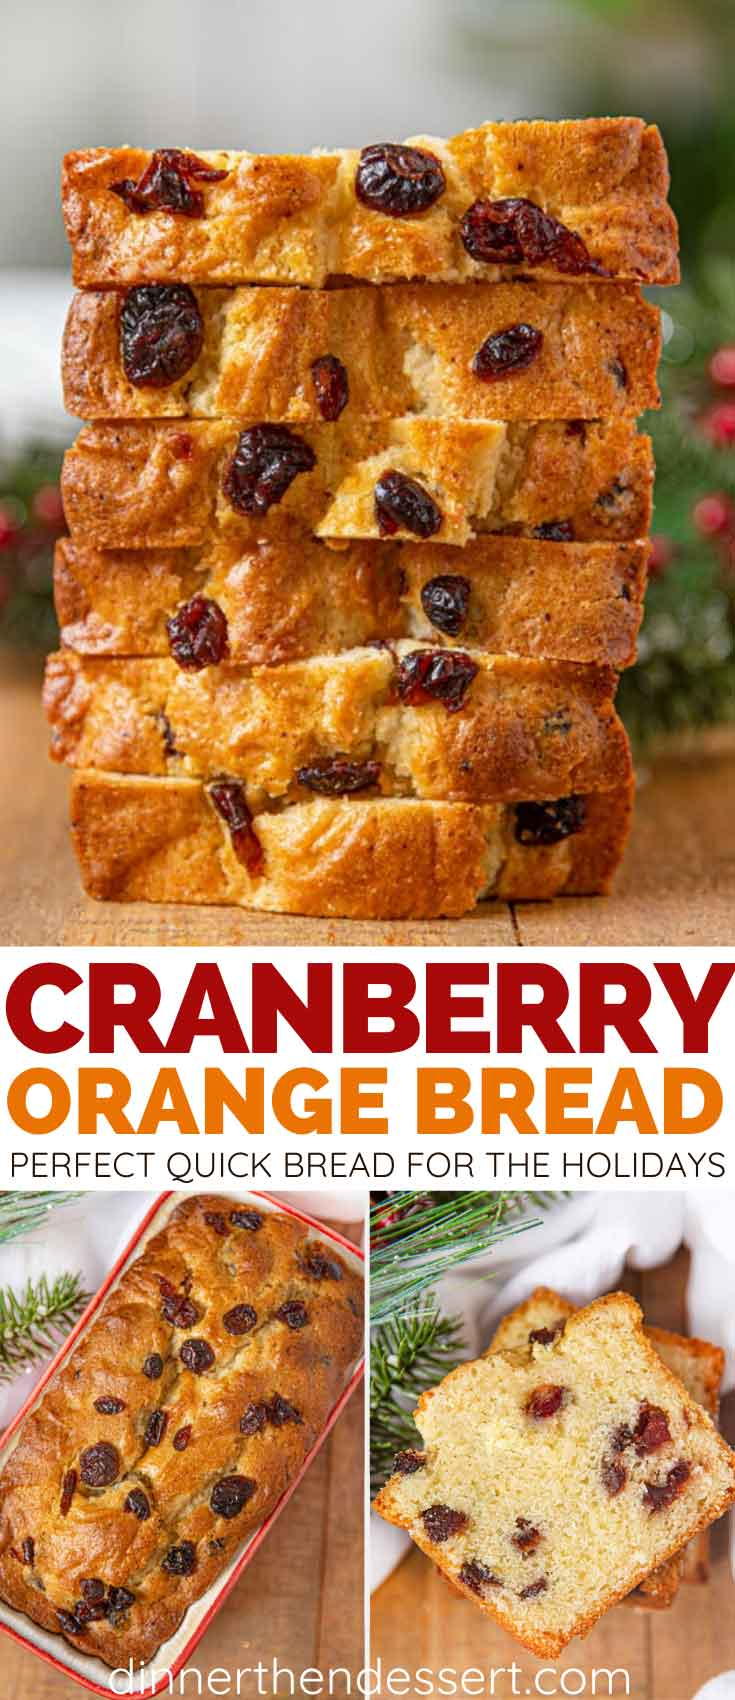 Cranberry Orange Bread collage